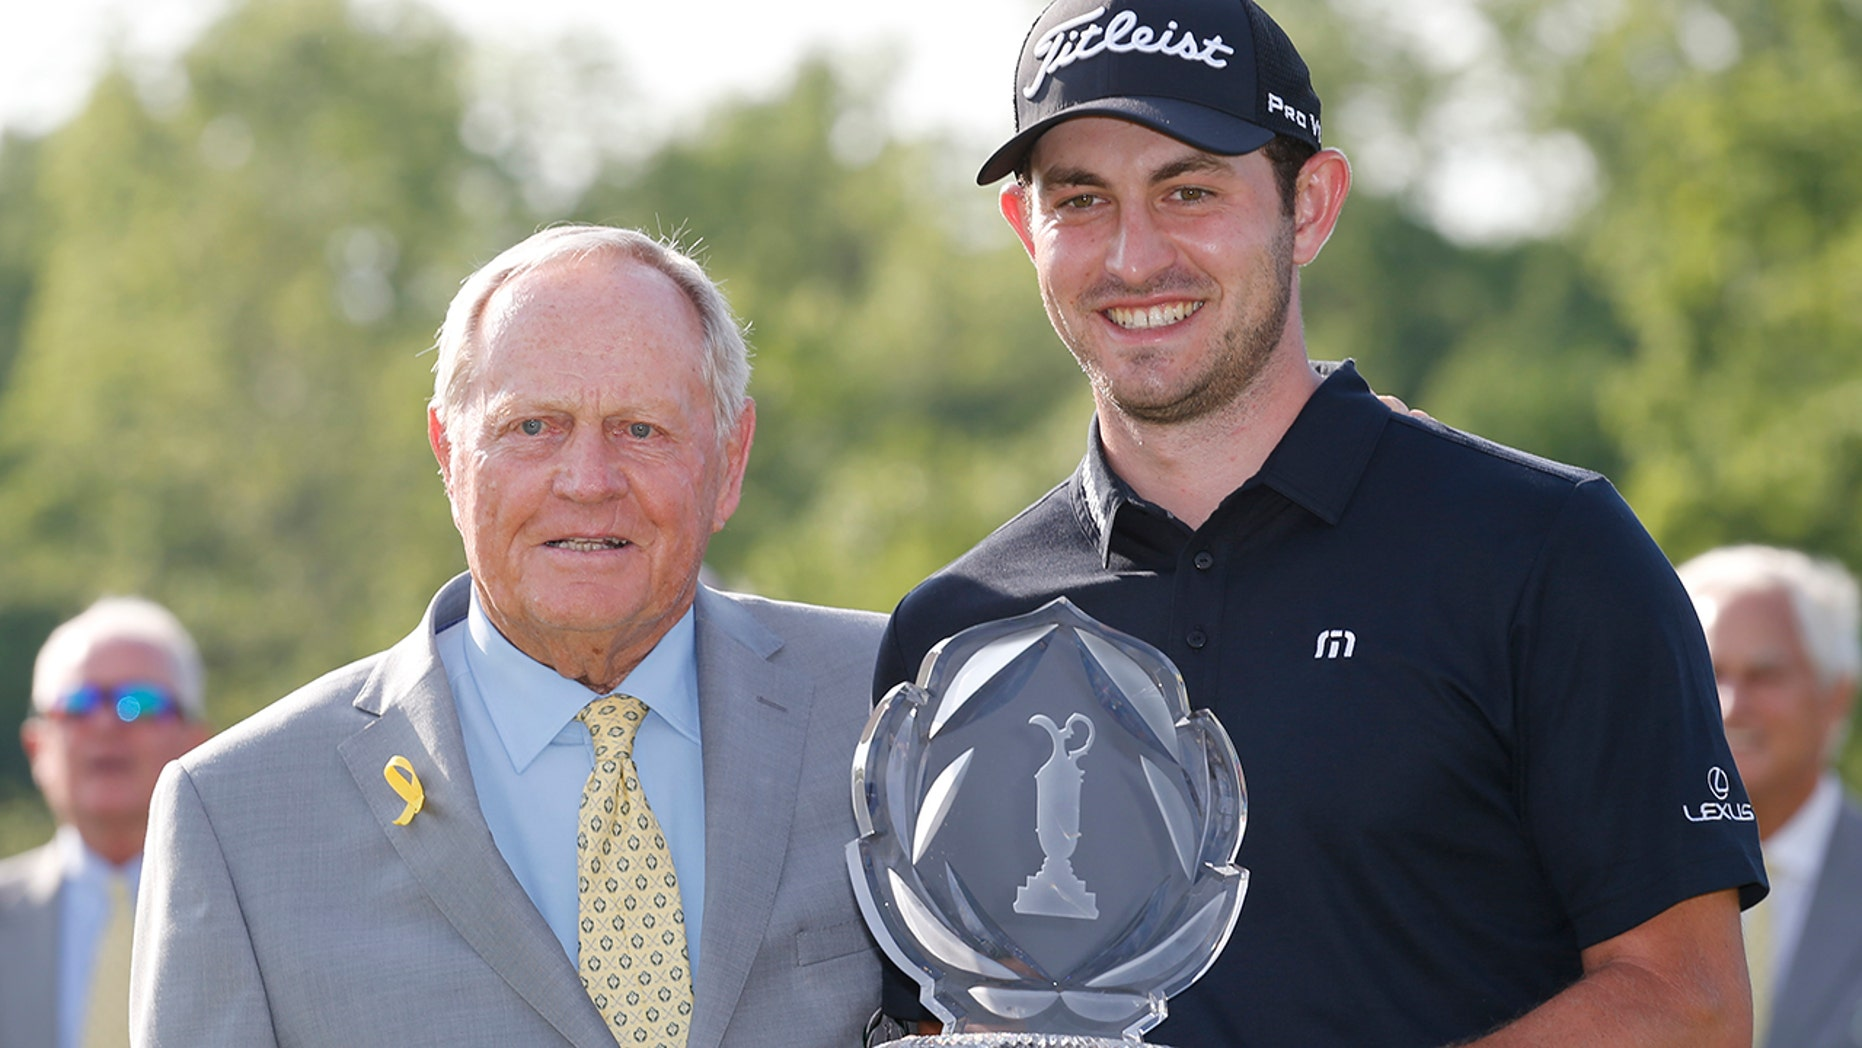 Jack Nicklaus, left, presents Patrick Cantlay with the trophy after Cantlay won the Memorial golf tournament Sunday, June 2, 2019, in Dublin, Ohio. (AP Photo/Jay LaPrete)